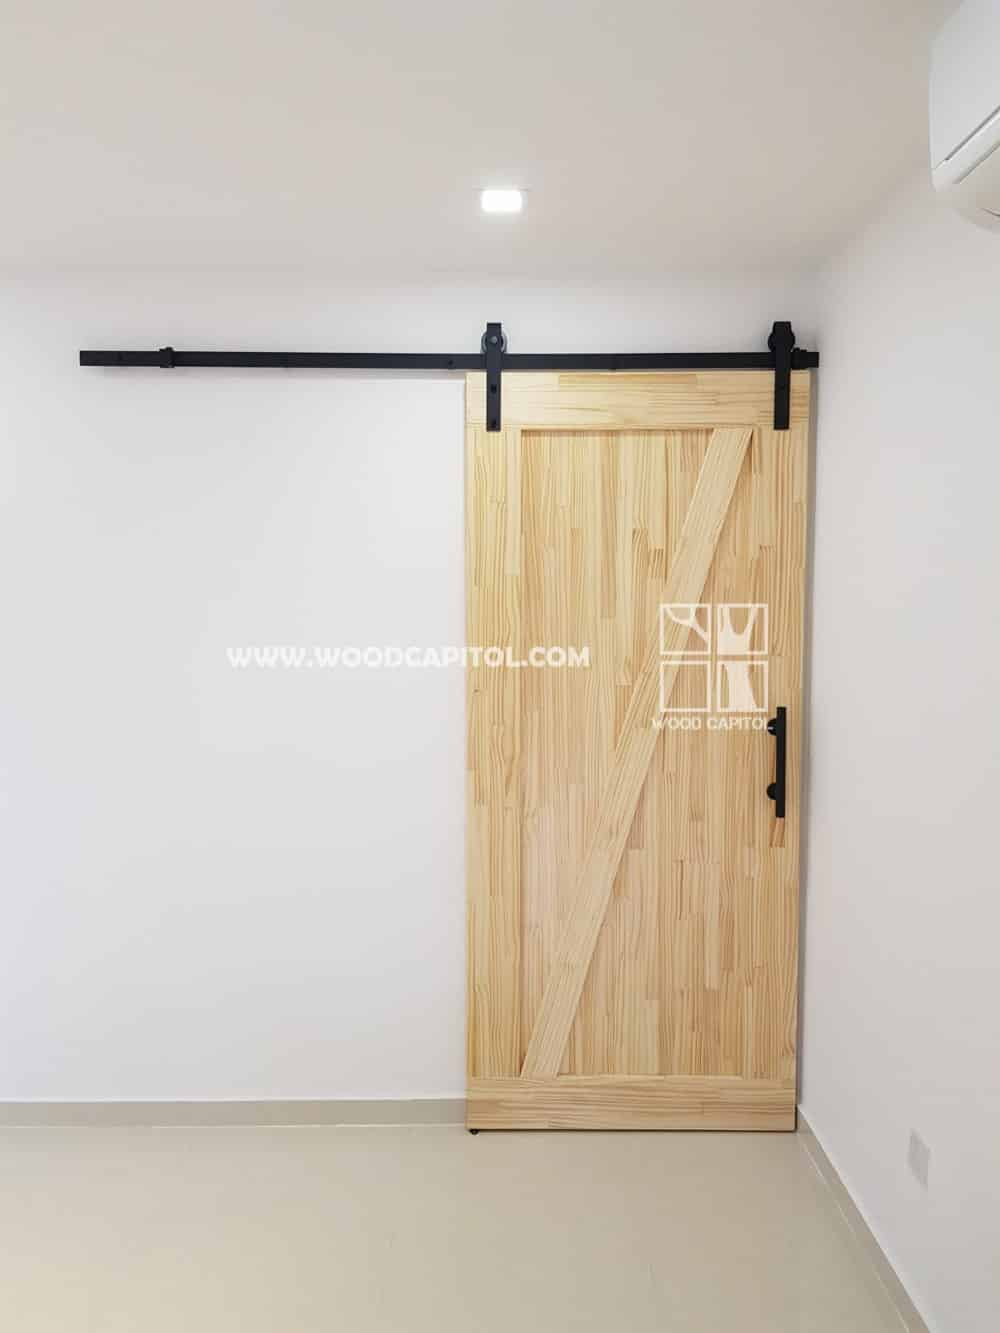 Wood Capitol Barndoor